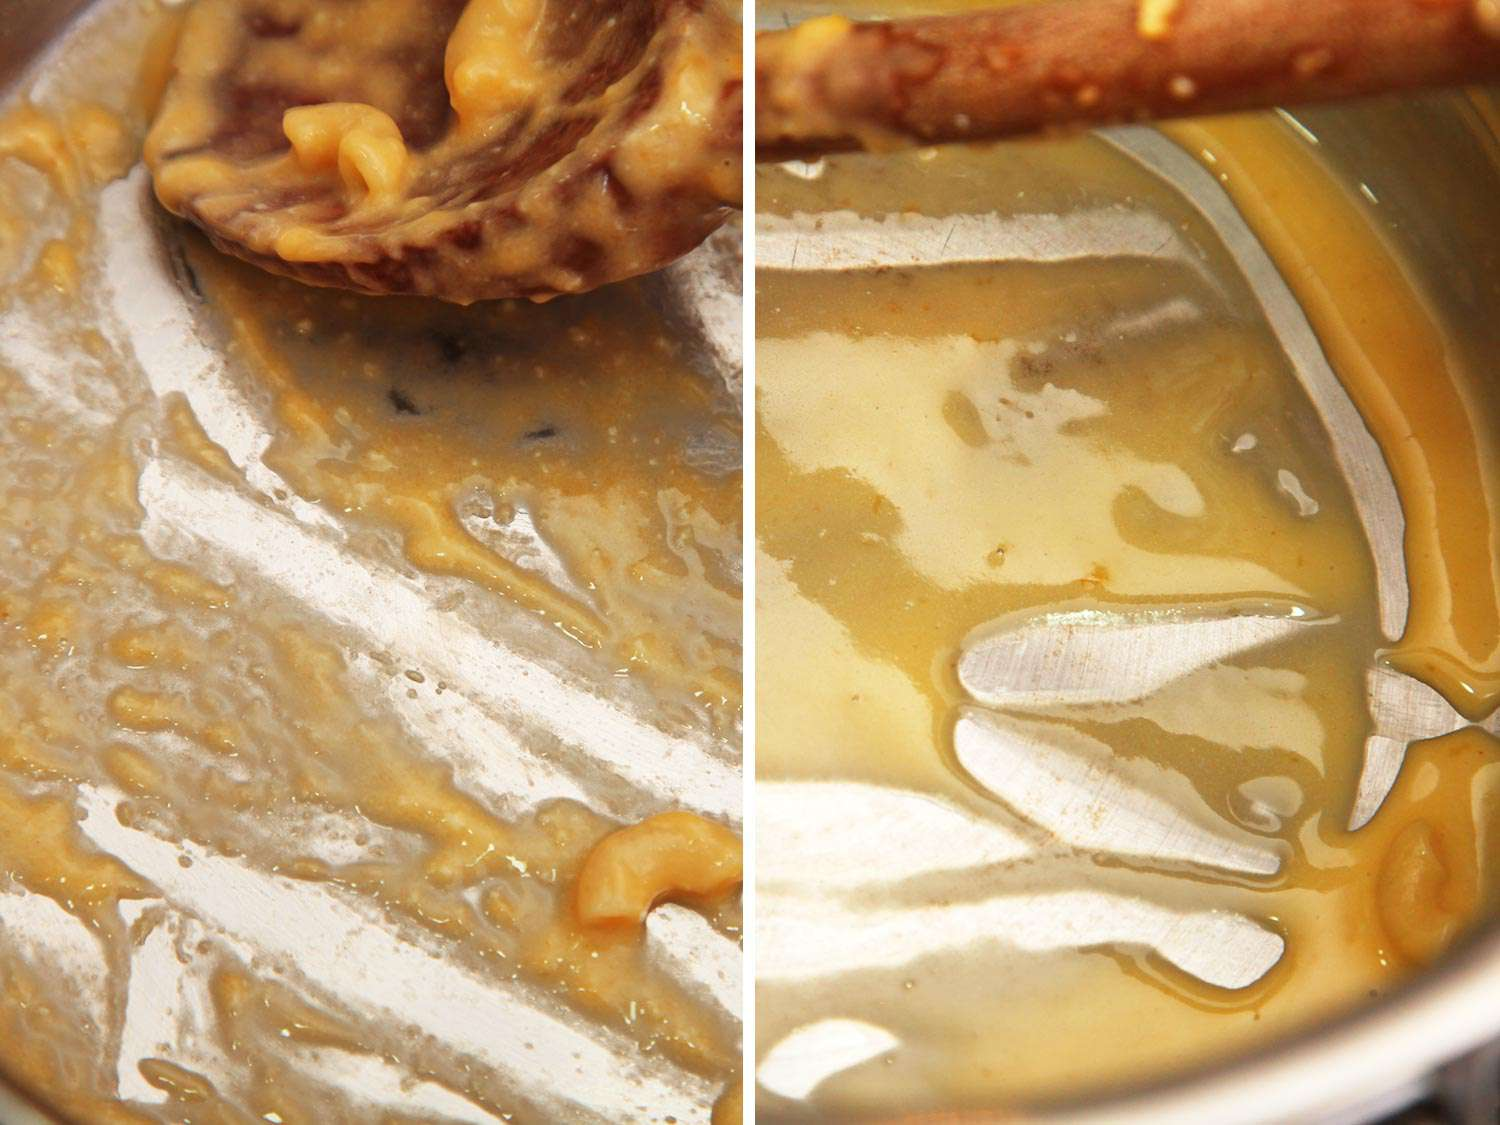 Comparing a béchamel-based sauce and one made with pure starch and evaporated milk